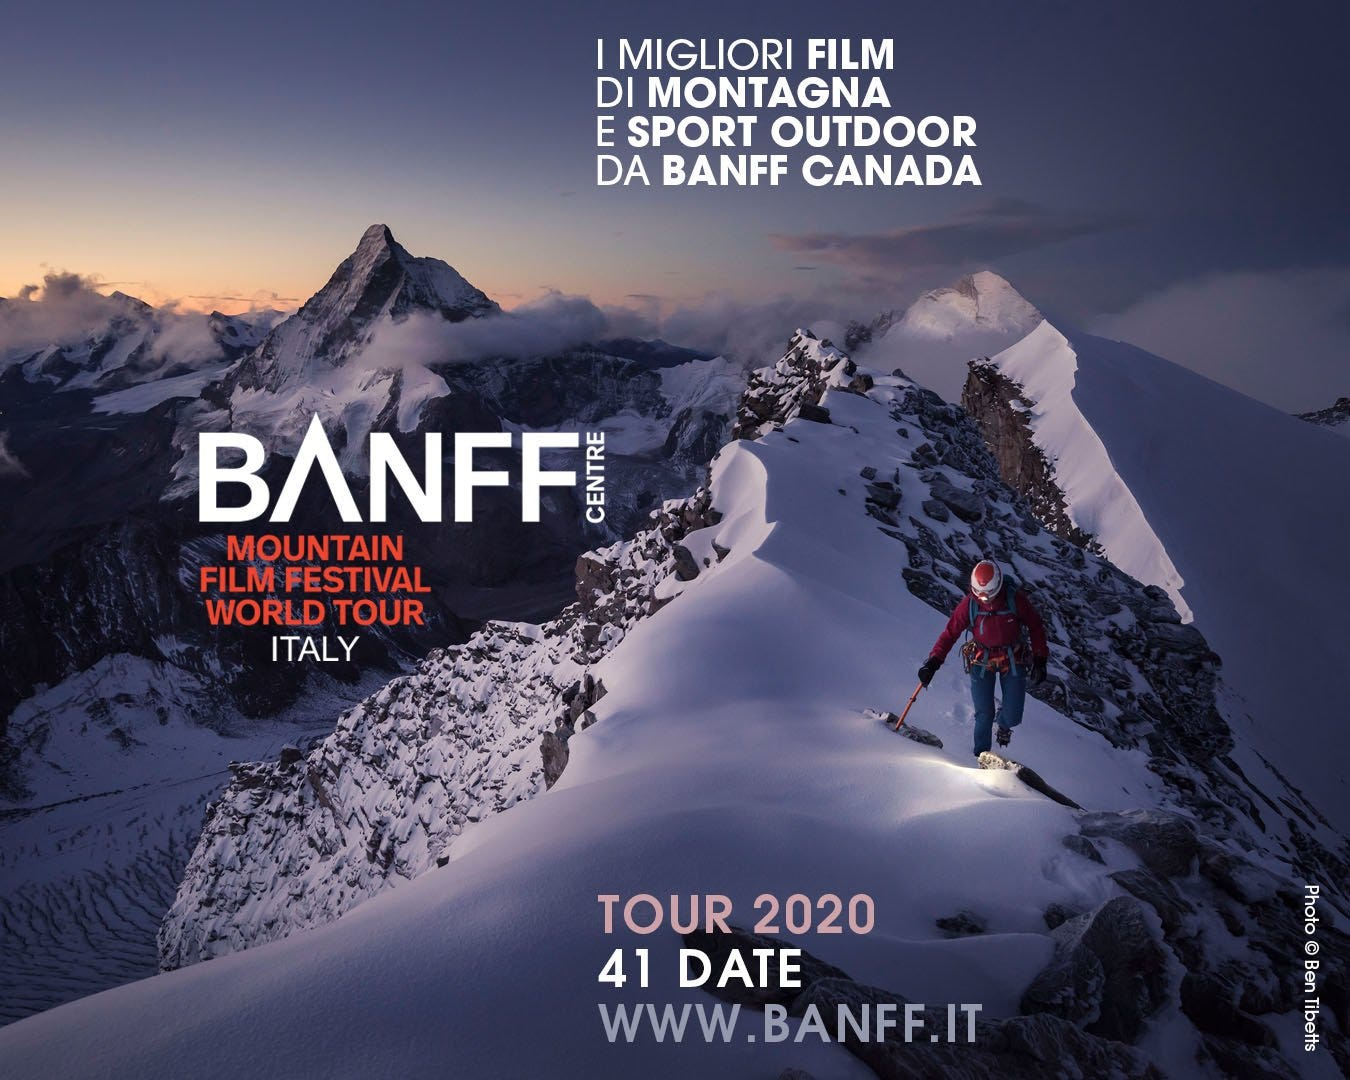 BANFF Mountain Film Festival Italy 2020: presented the official program